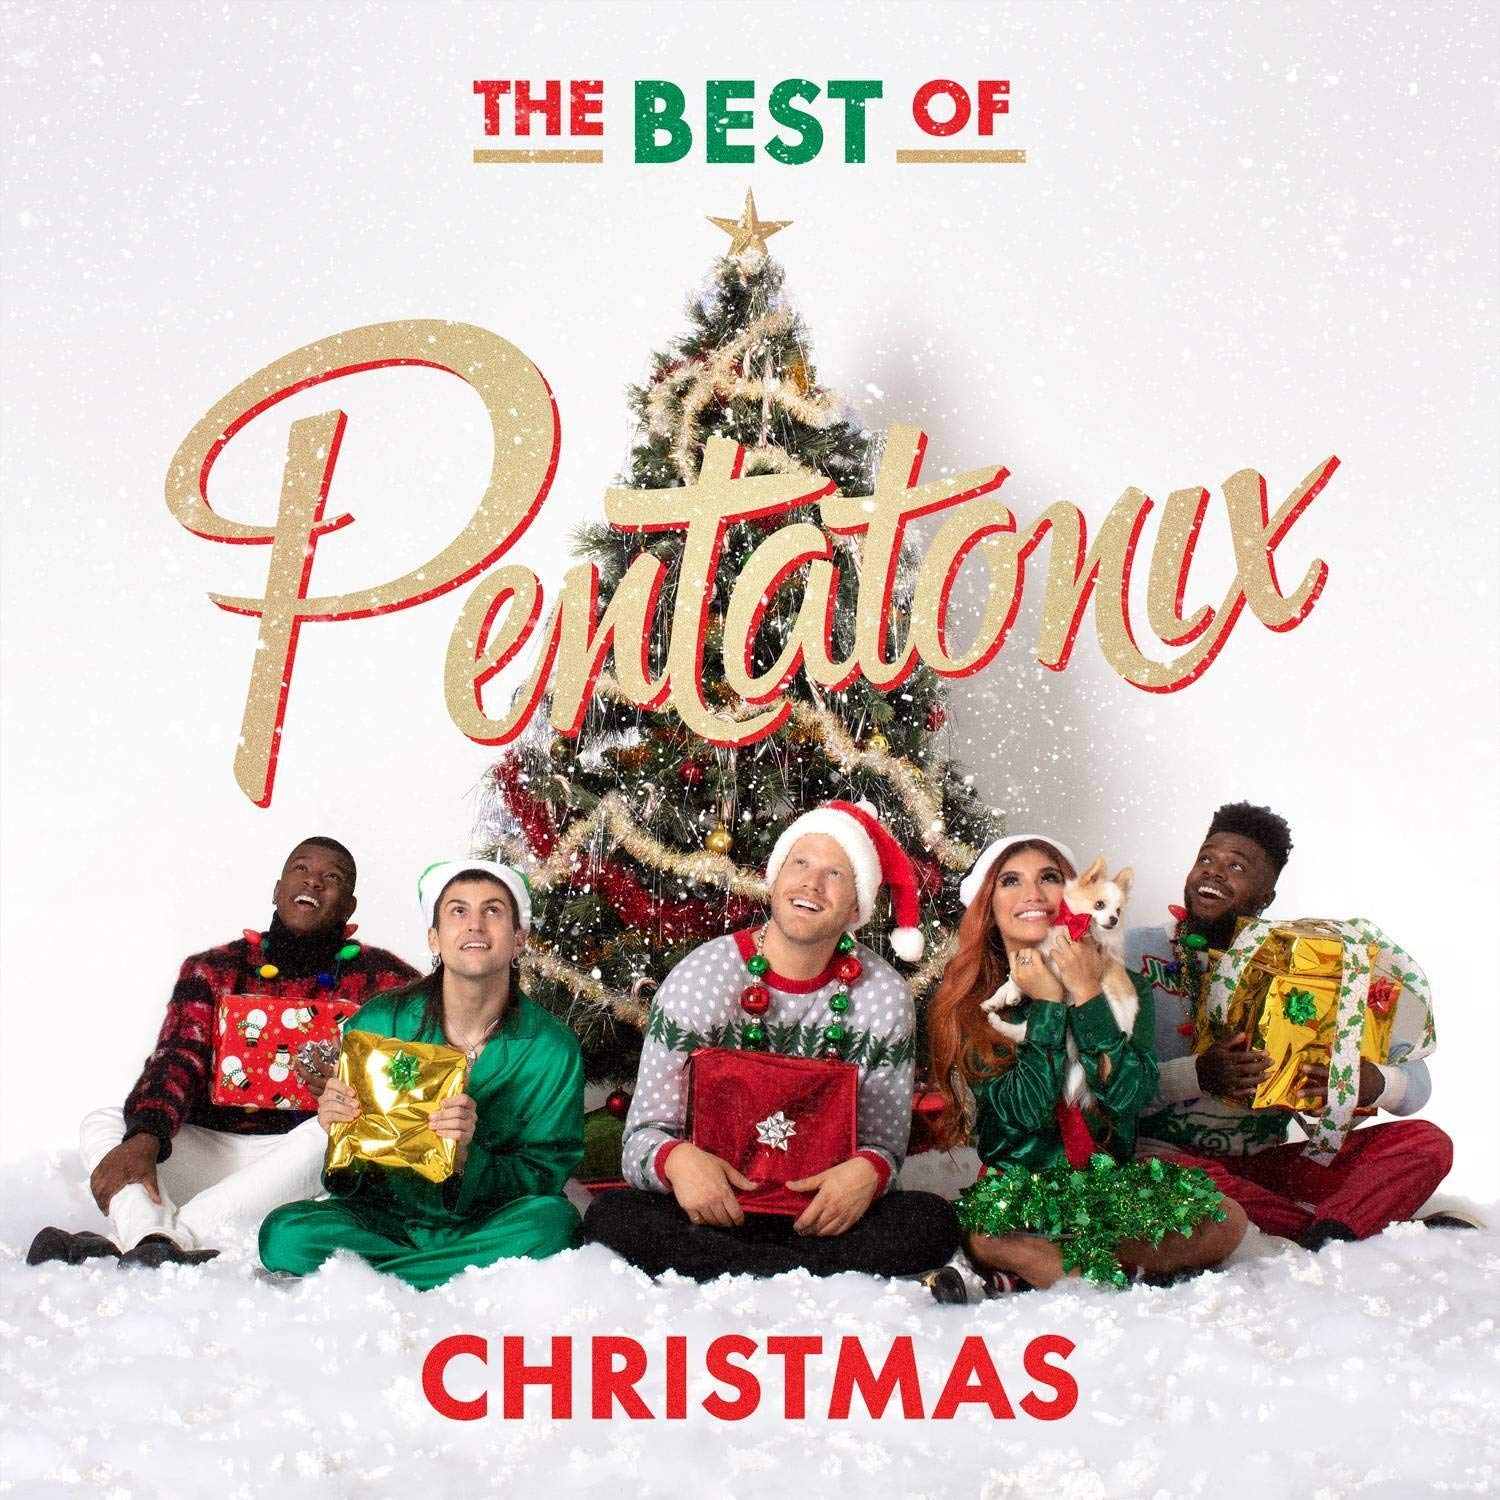 Pentatonix is an acapella group with five members, with an array of music that can be found on Youtube, iTunes, and many more music distributing facilities.